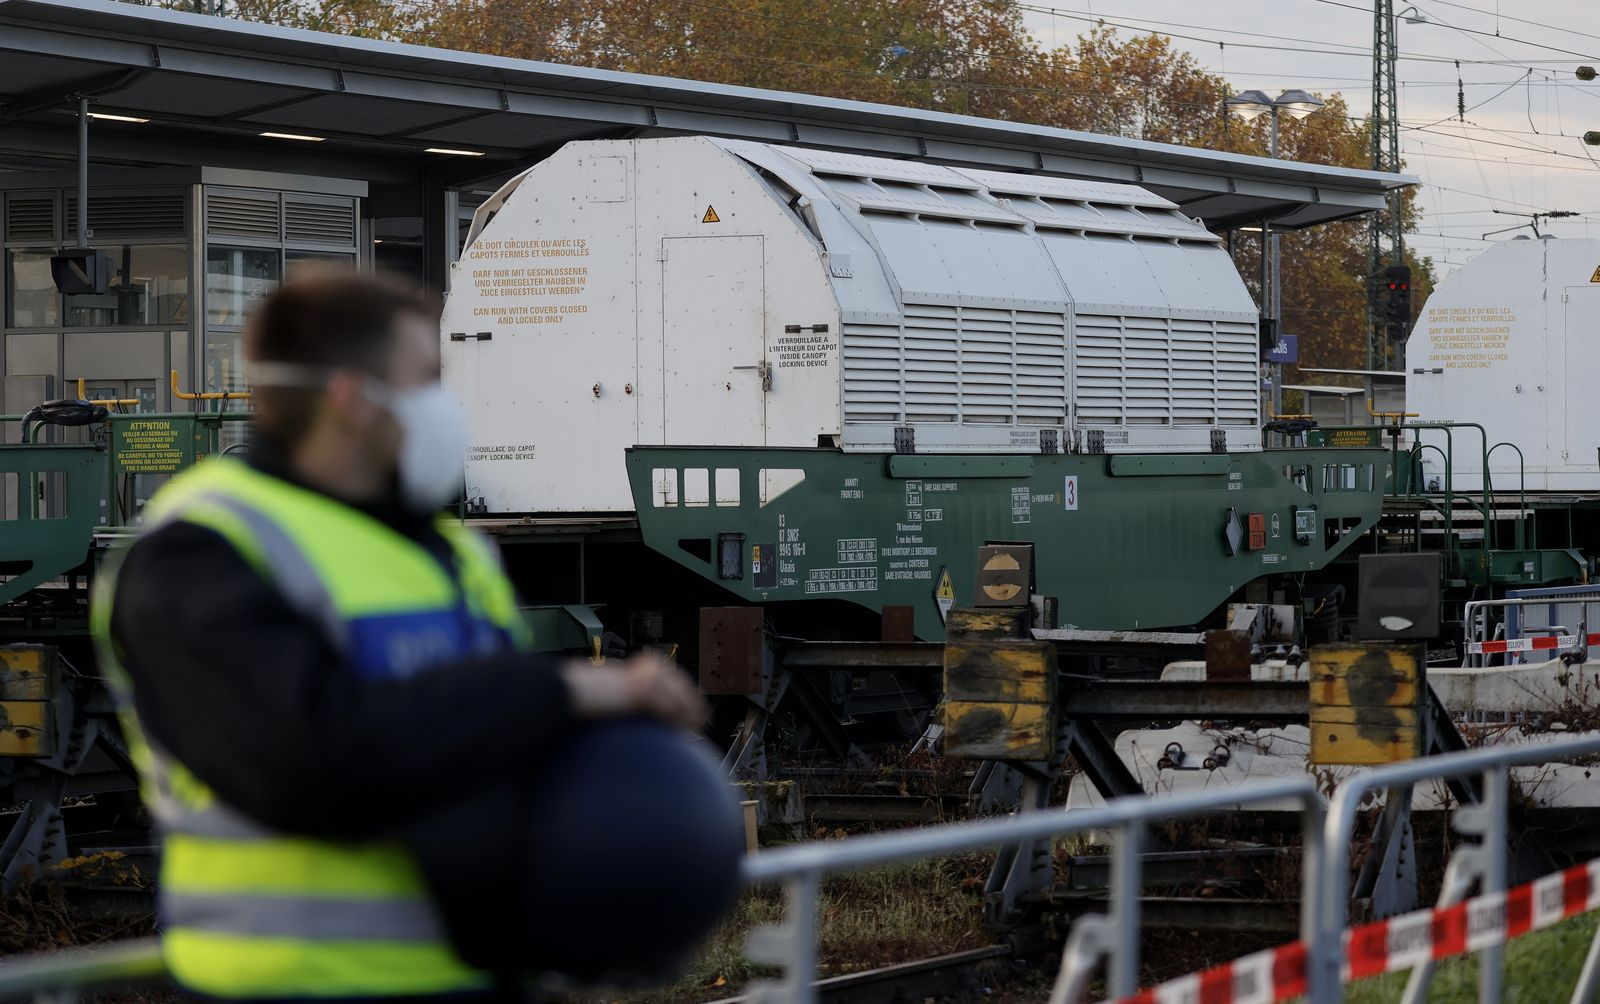 Nuclear waste returns from Sellafield to Germany, Biblis - 04 Nov 2020